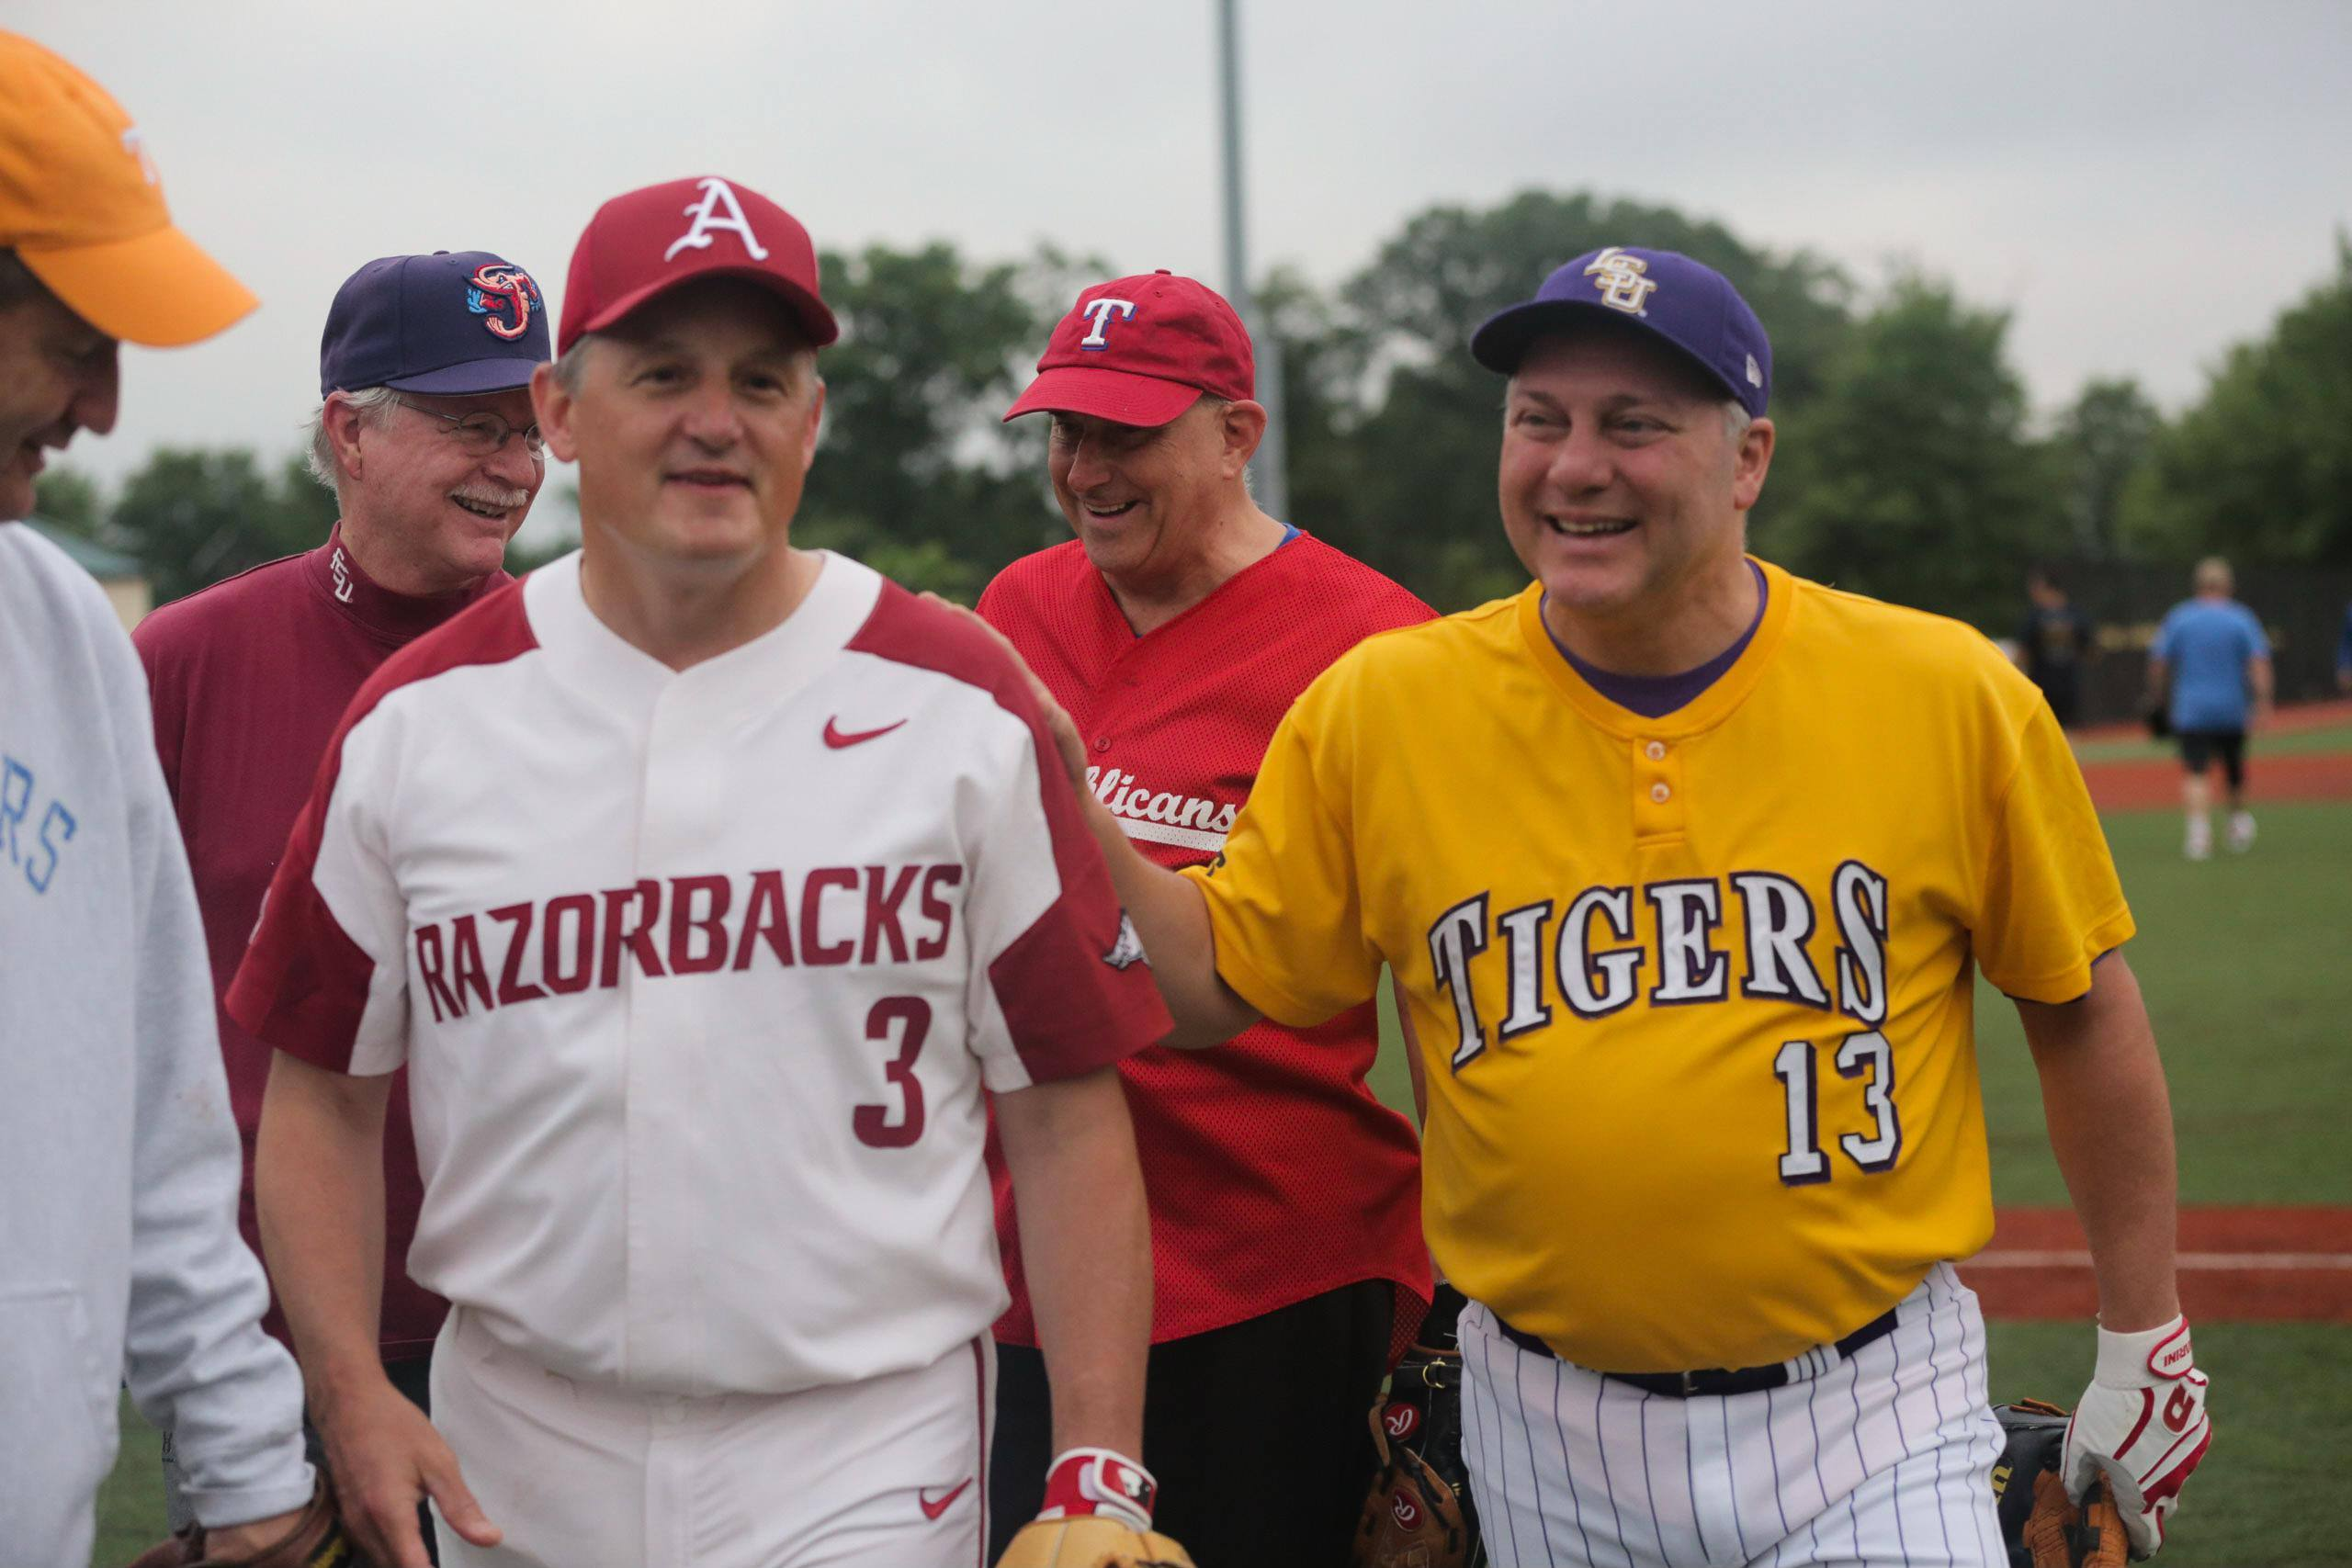 Arkansas Rep. Bruce Westerman (L) and Louisiana Rep. Steve Scalise (R) practice for the congressional baseball game on June 20, 2019. Image courtesy of Bruce Westerman and Transportation & Infrastructure Committee